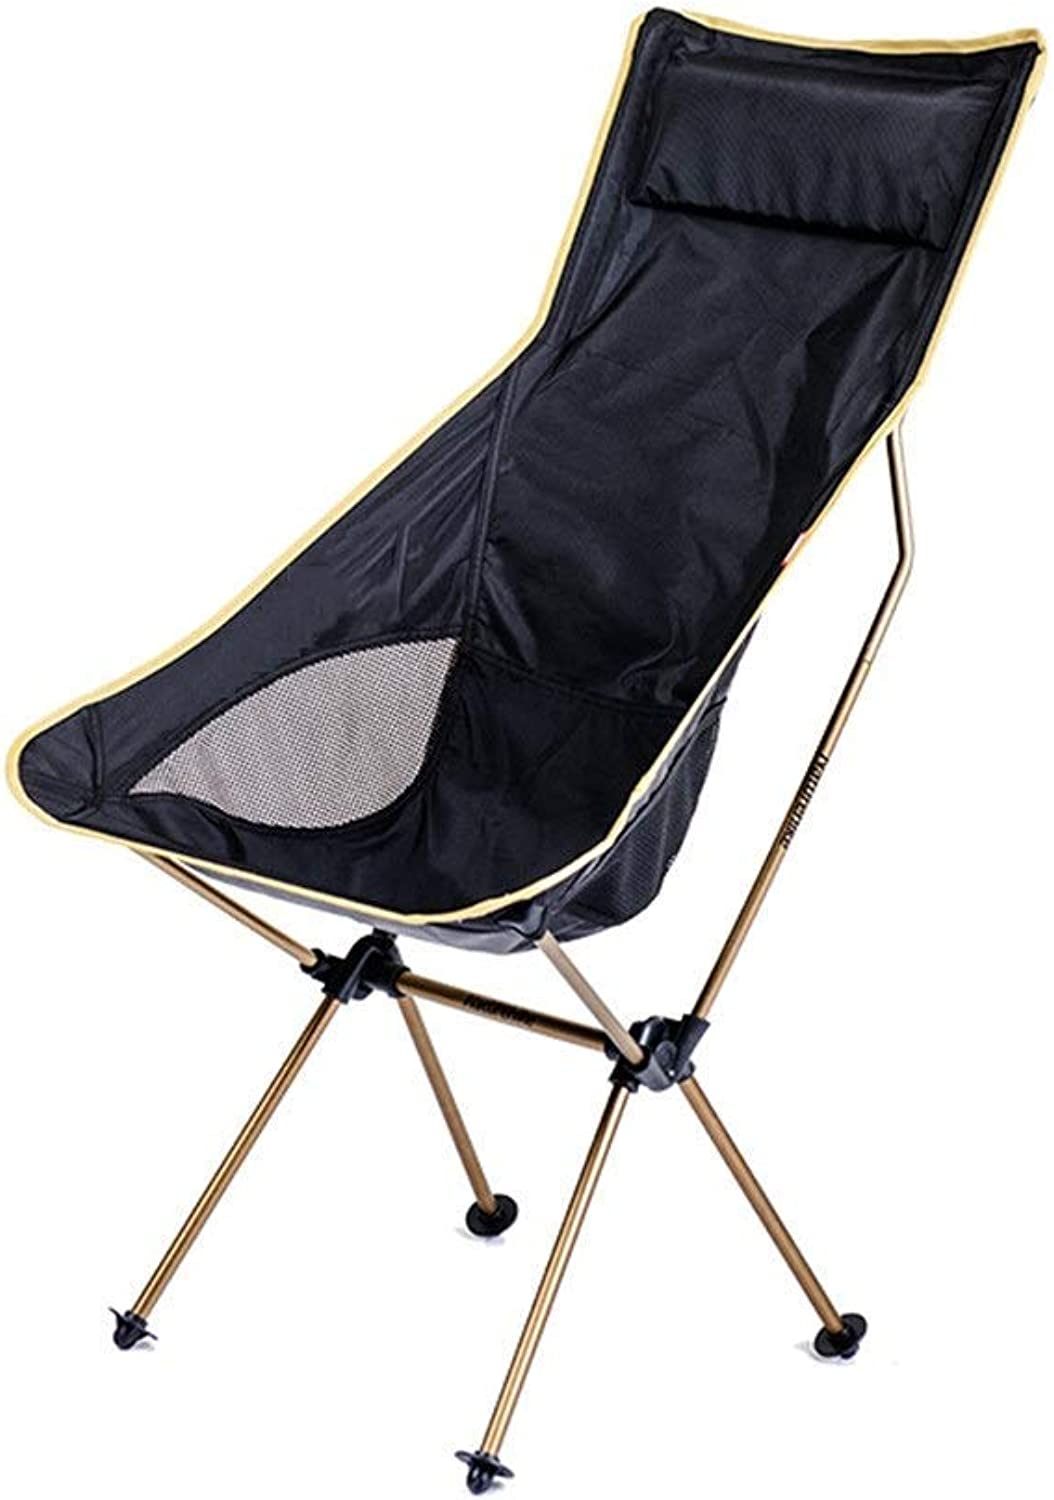 Outdoor Folding Chair, Aluminum Alloy Chair with Carry Bag, Perfect for Garden Camping Fishing Hiking Picnic Park,A